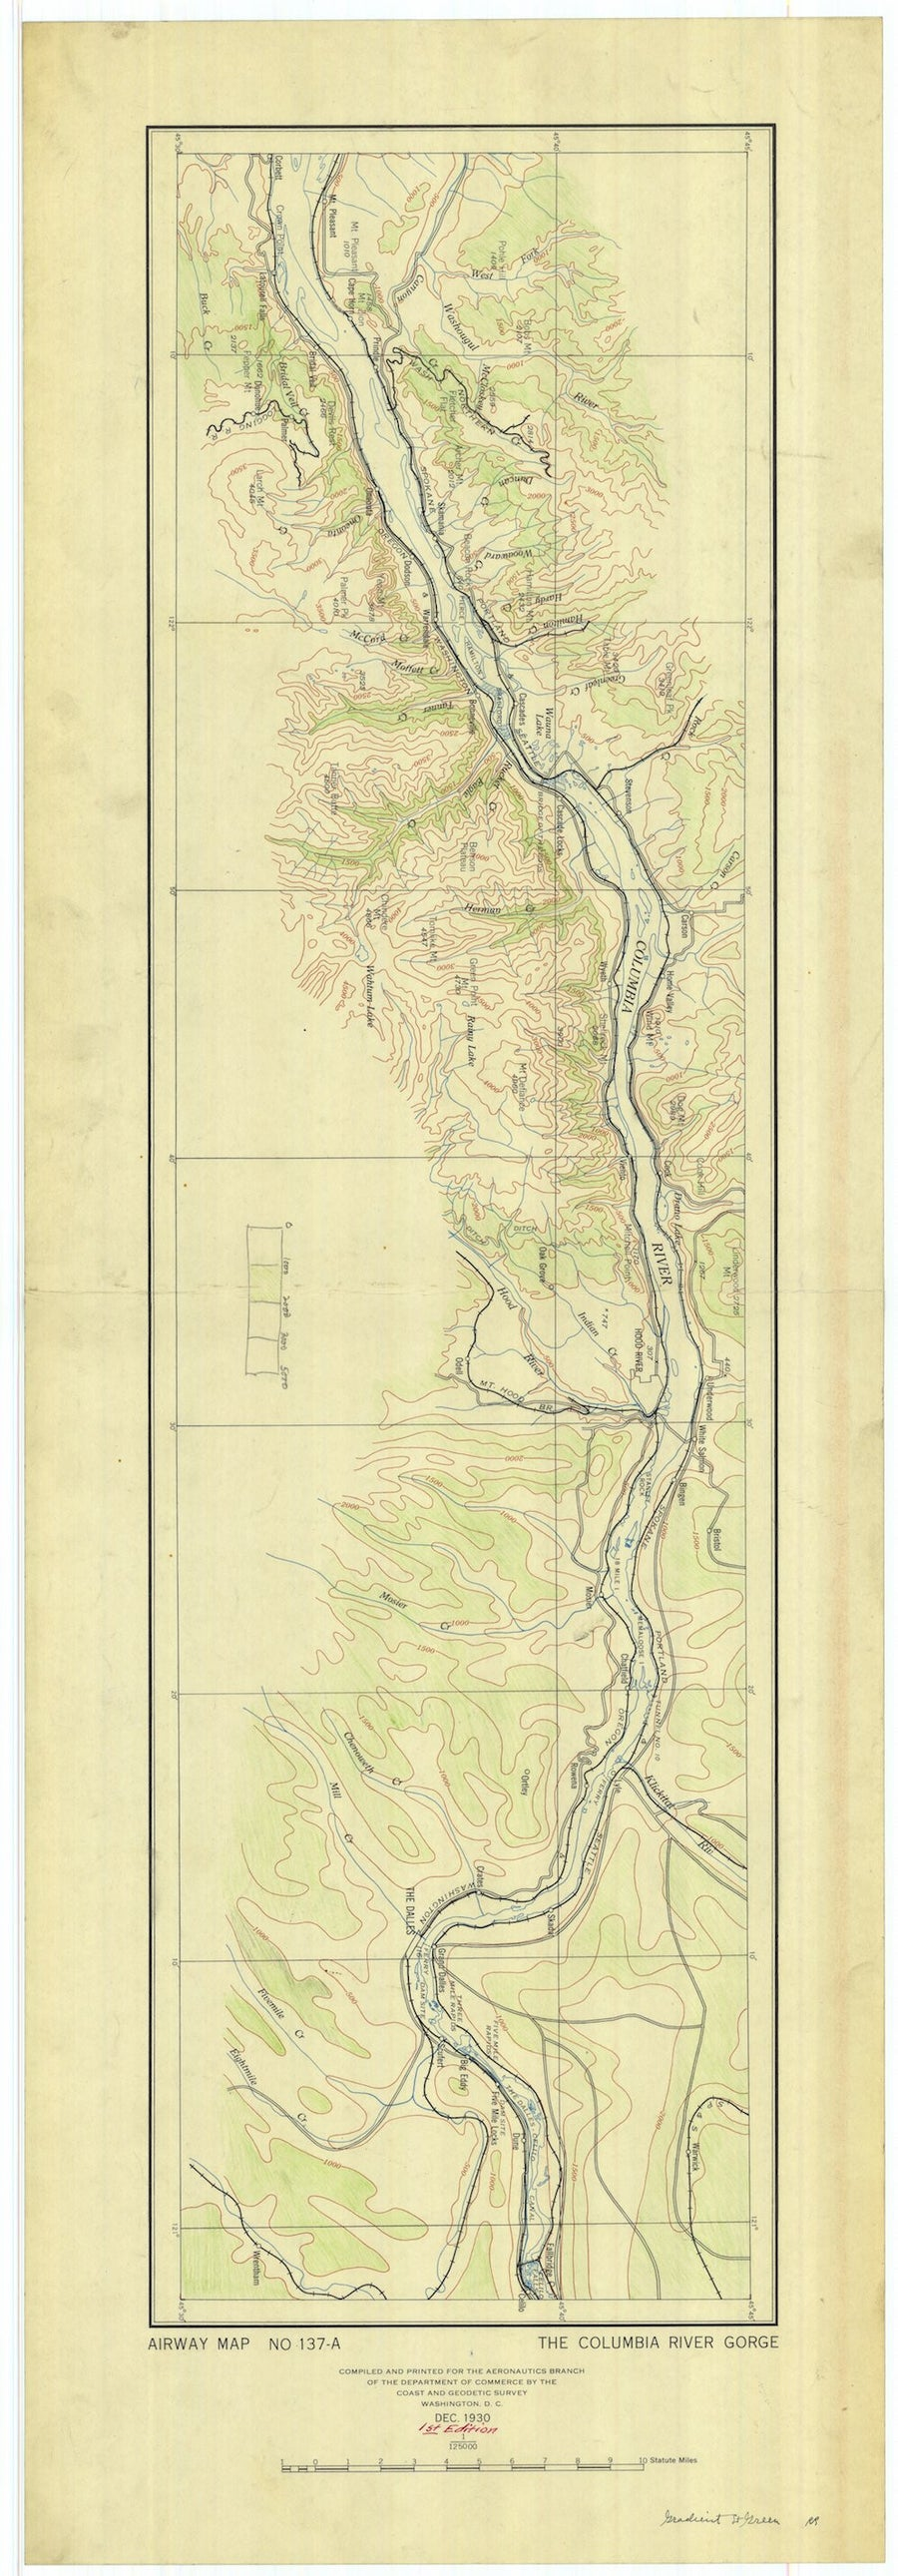 Columbia River Gorge Map - 1930